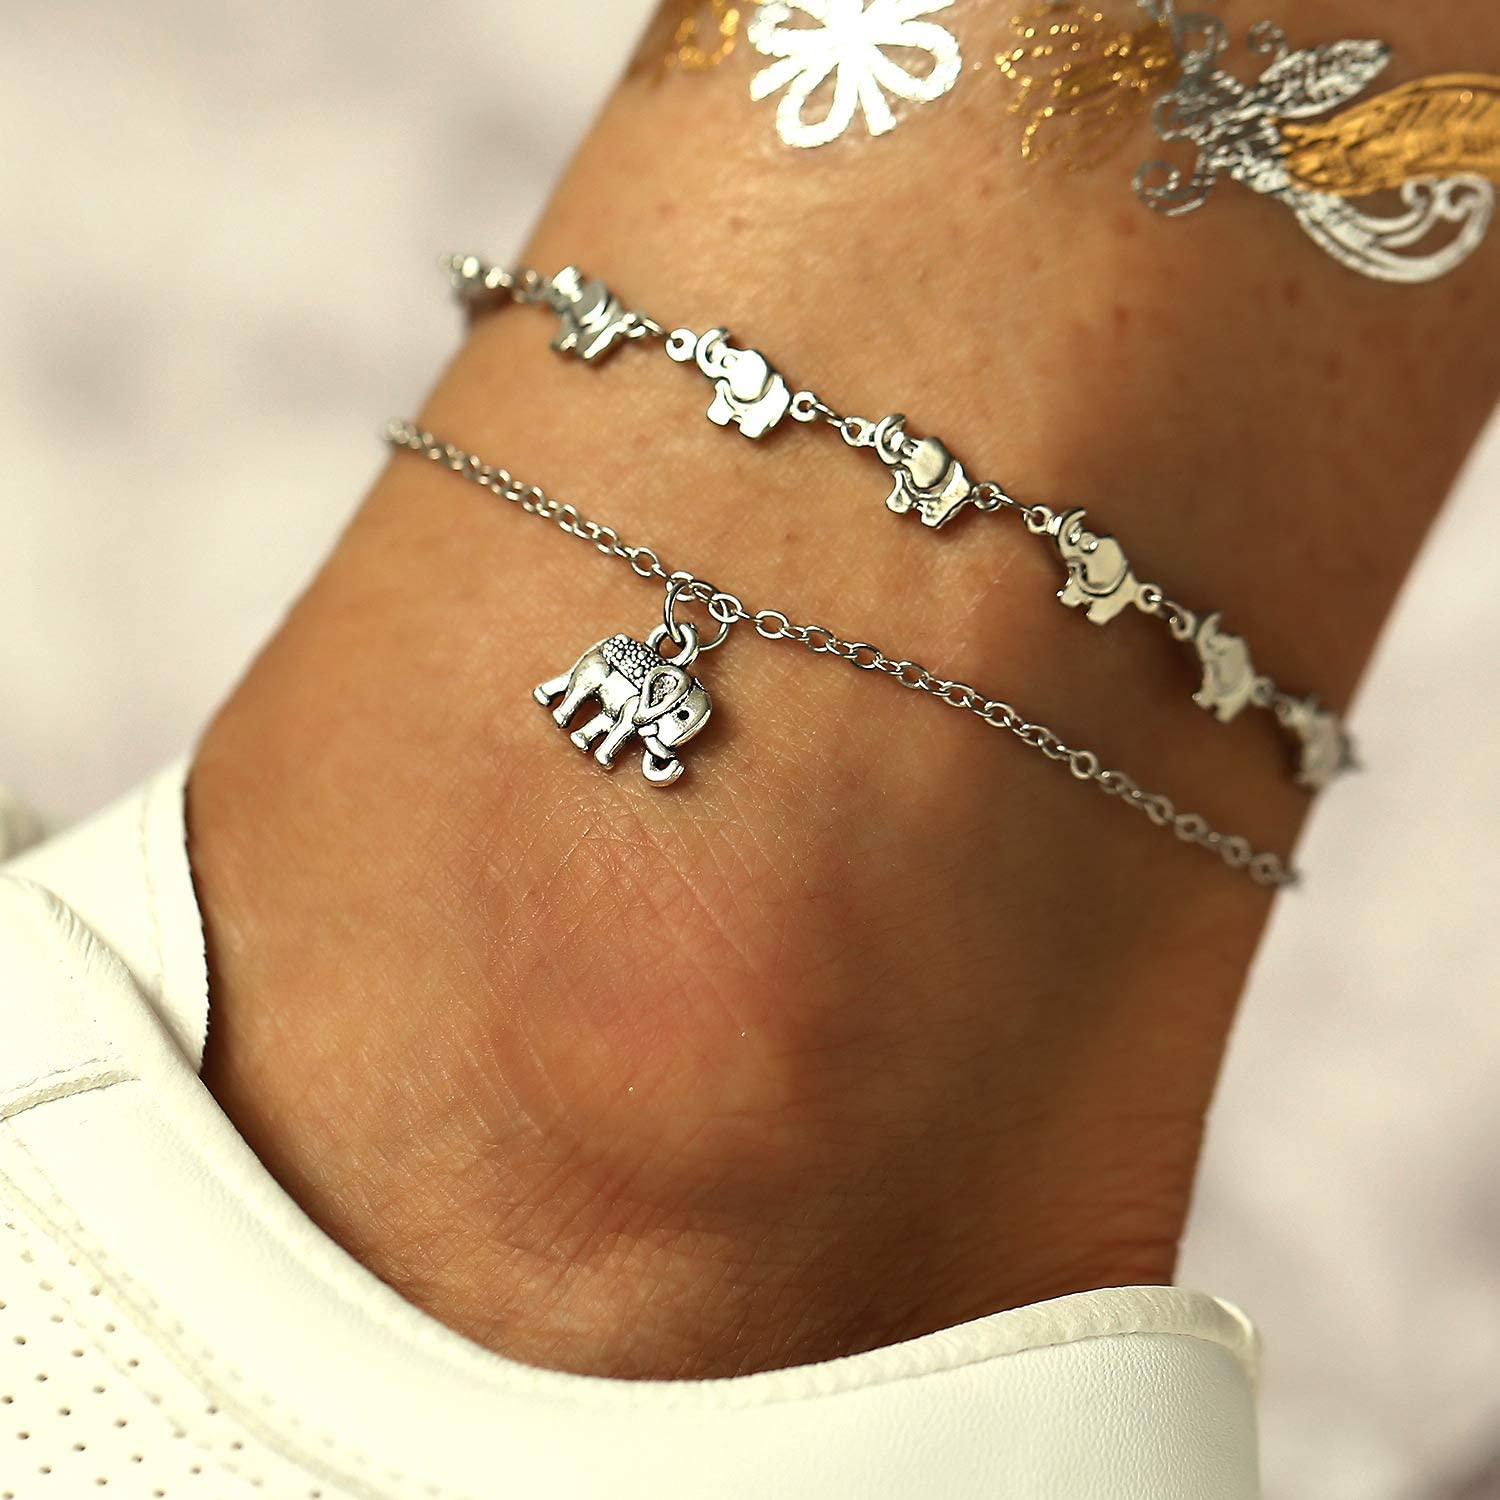 Tassel Elephants Charm Double-deck Chains Ankle 925 Sterling Silver Plated Women Girls Anklets Bracelet,Lobster clasp